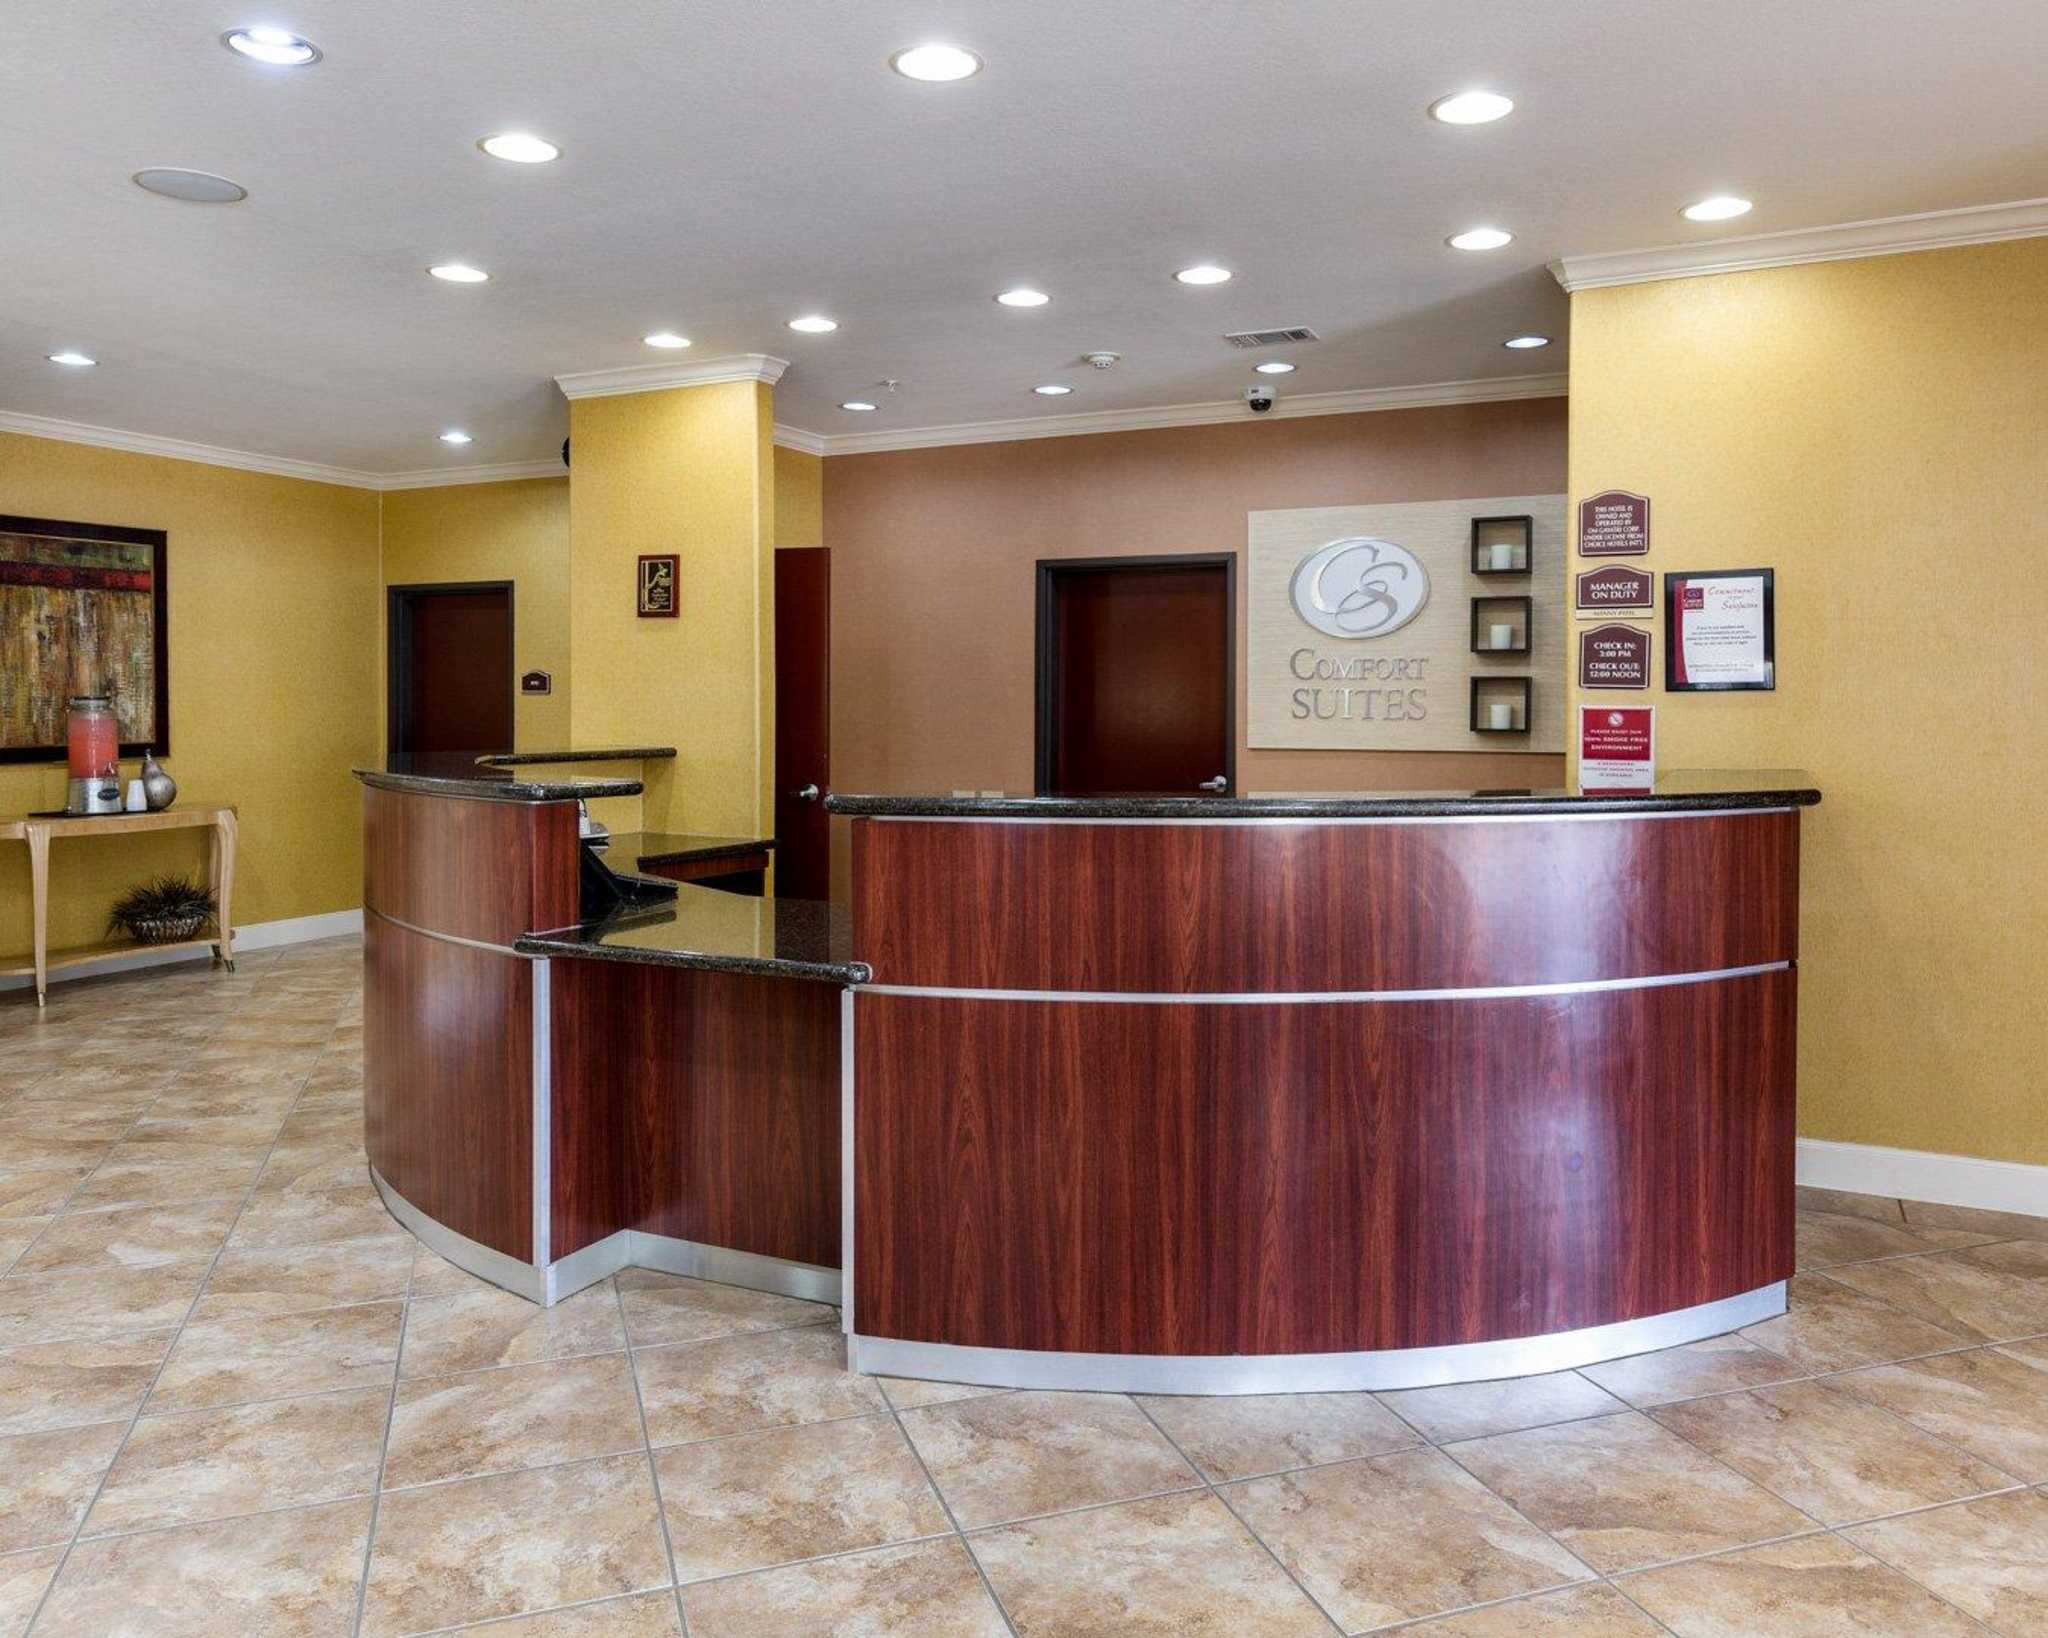 Comfort Suites Pearland - South Houston image 5